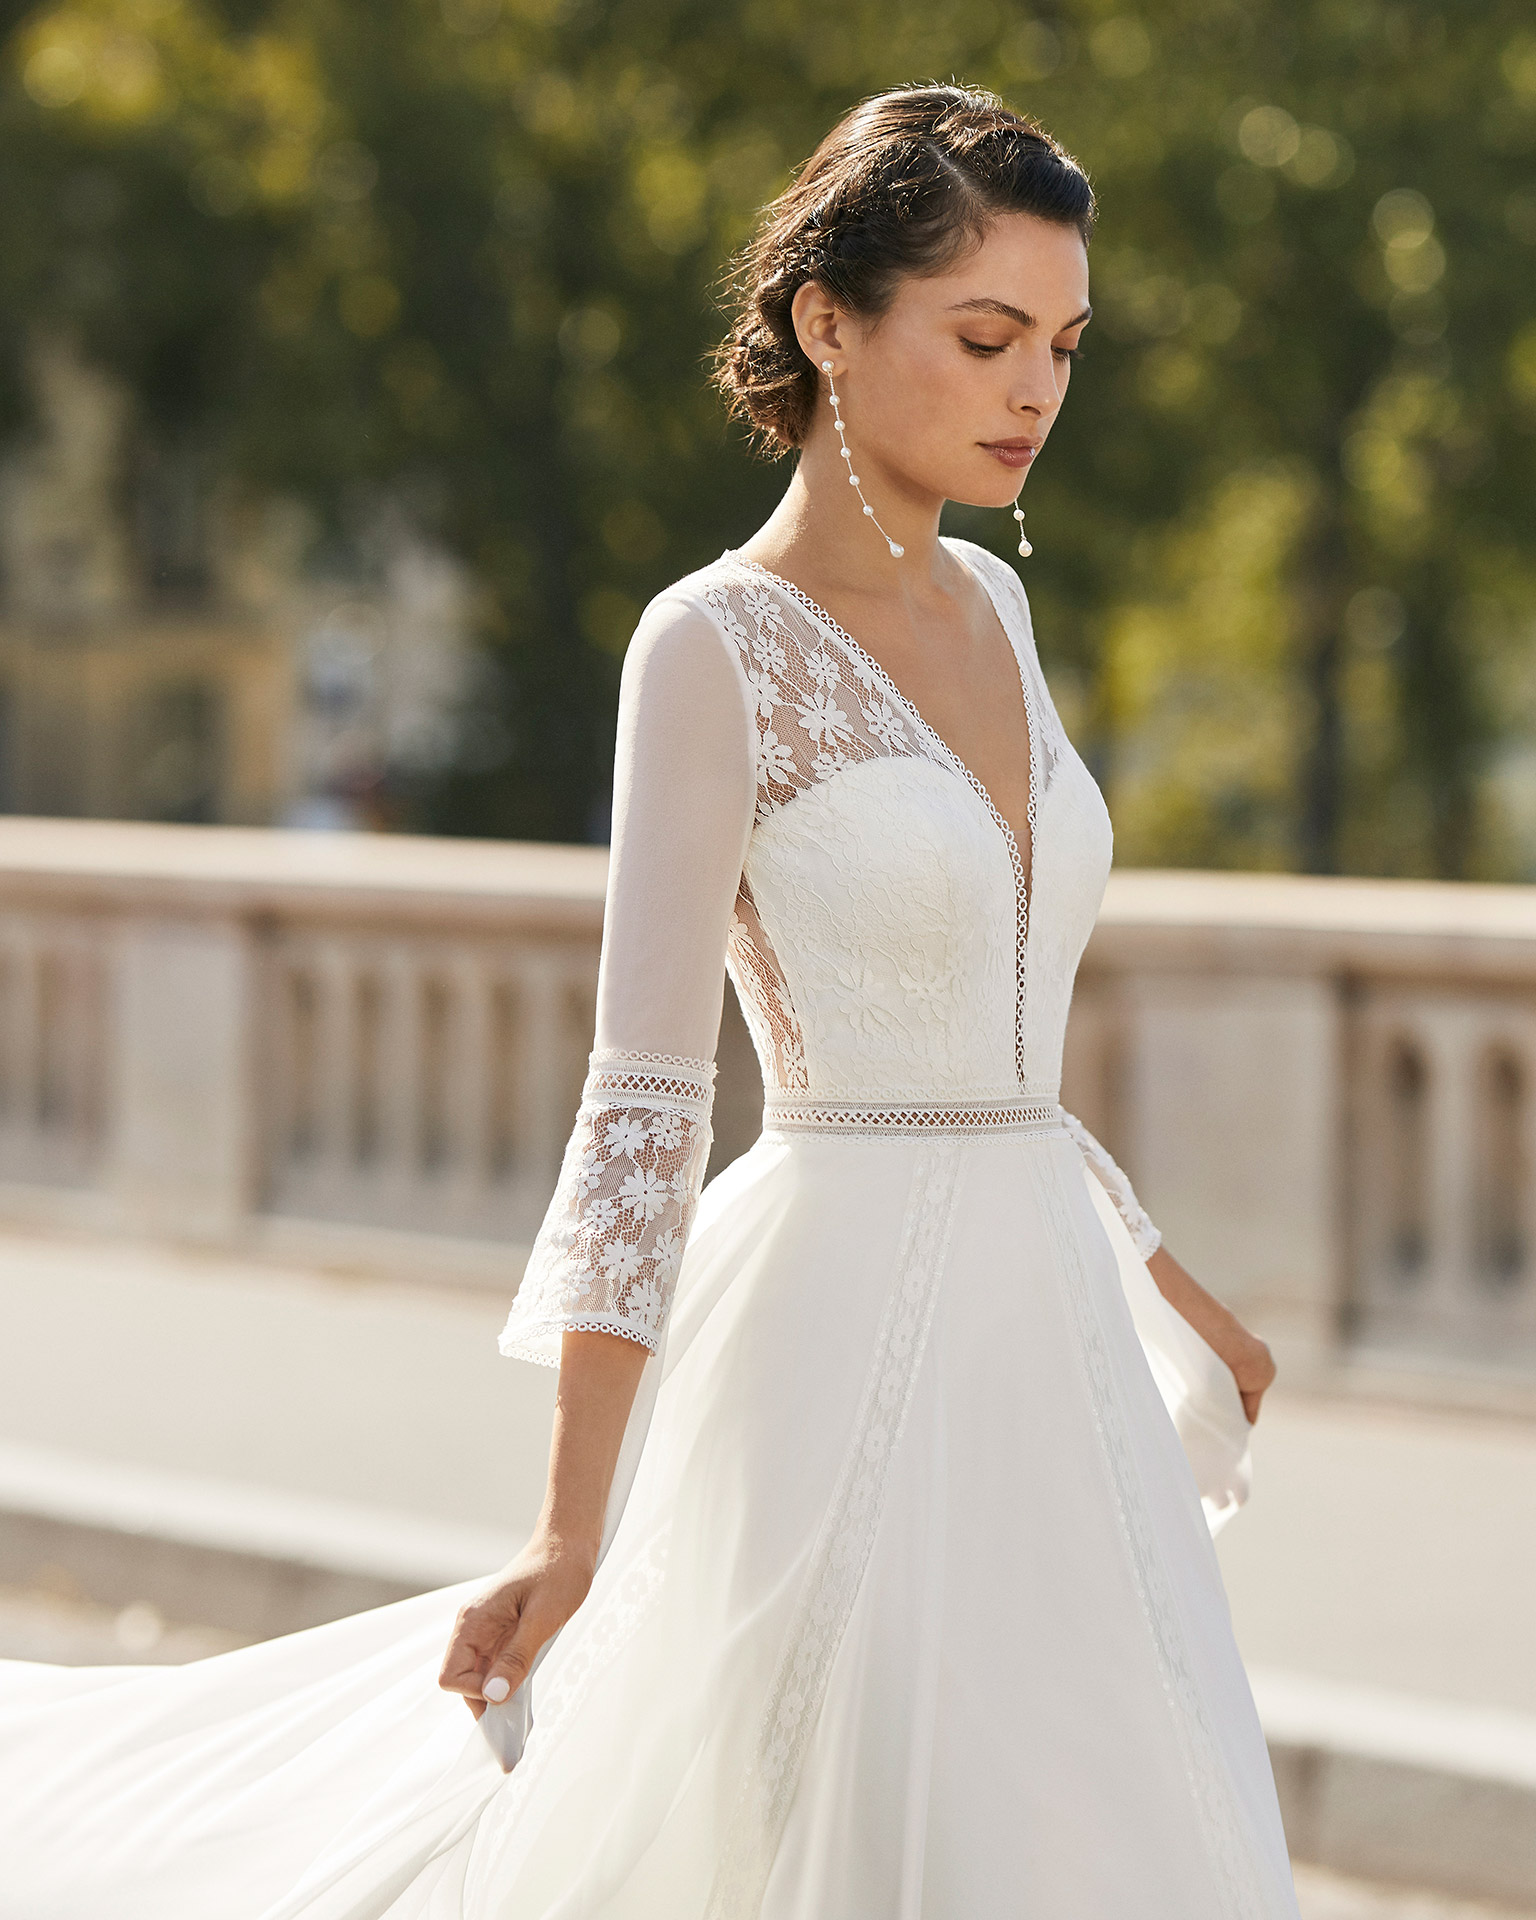 Wedding dress in chiffon. V-neckline in lace, three-quarter flared sleeves in chiffon and lace and lace back with buttons. 2021 ALMANOVIA Collection.